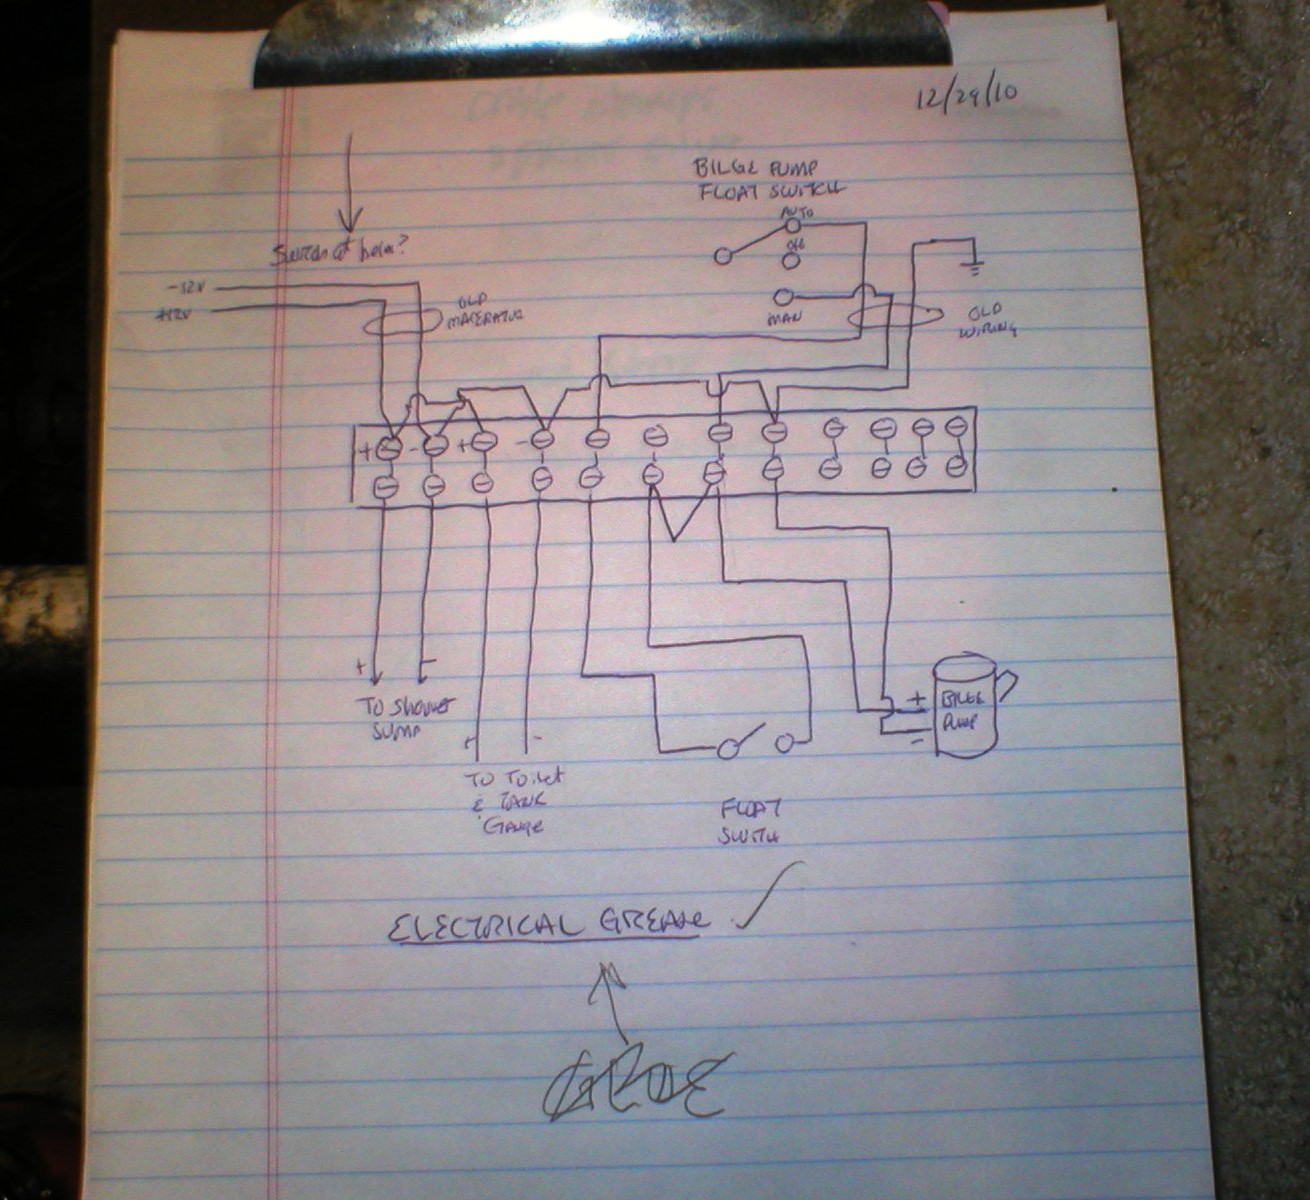 wiring diagram for bilge pump float switch the wiring diagram float switch wiring diagram nodasystech wiring diagram